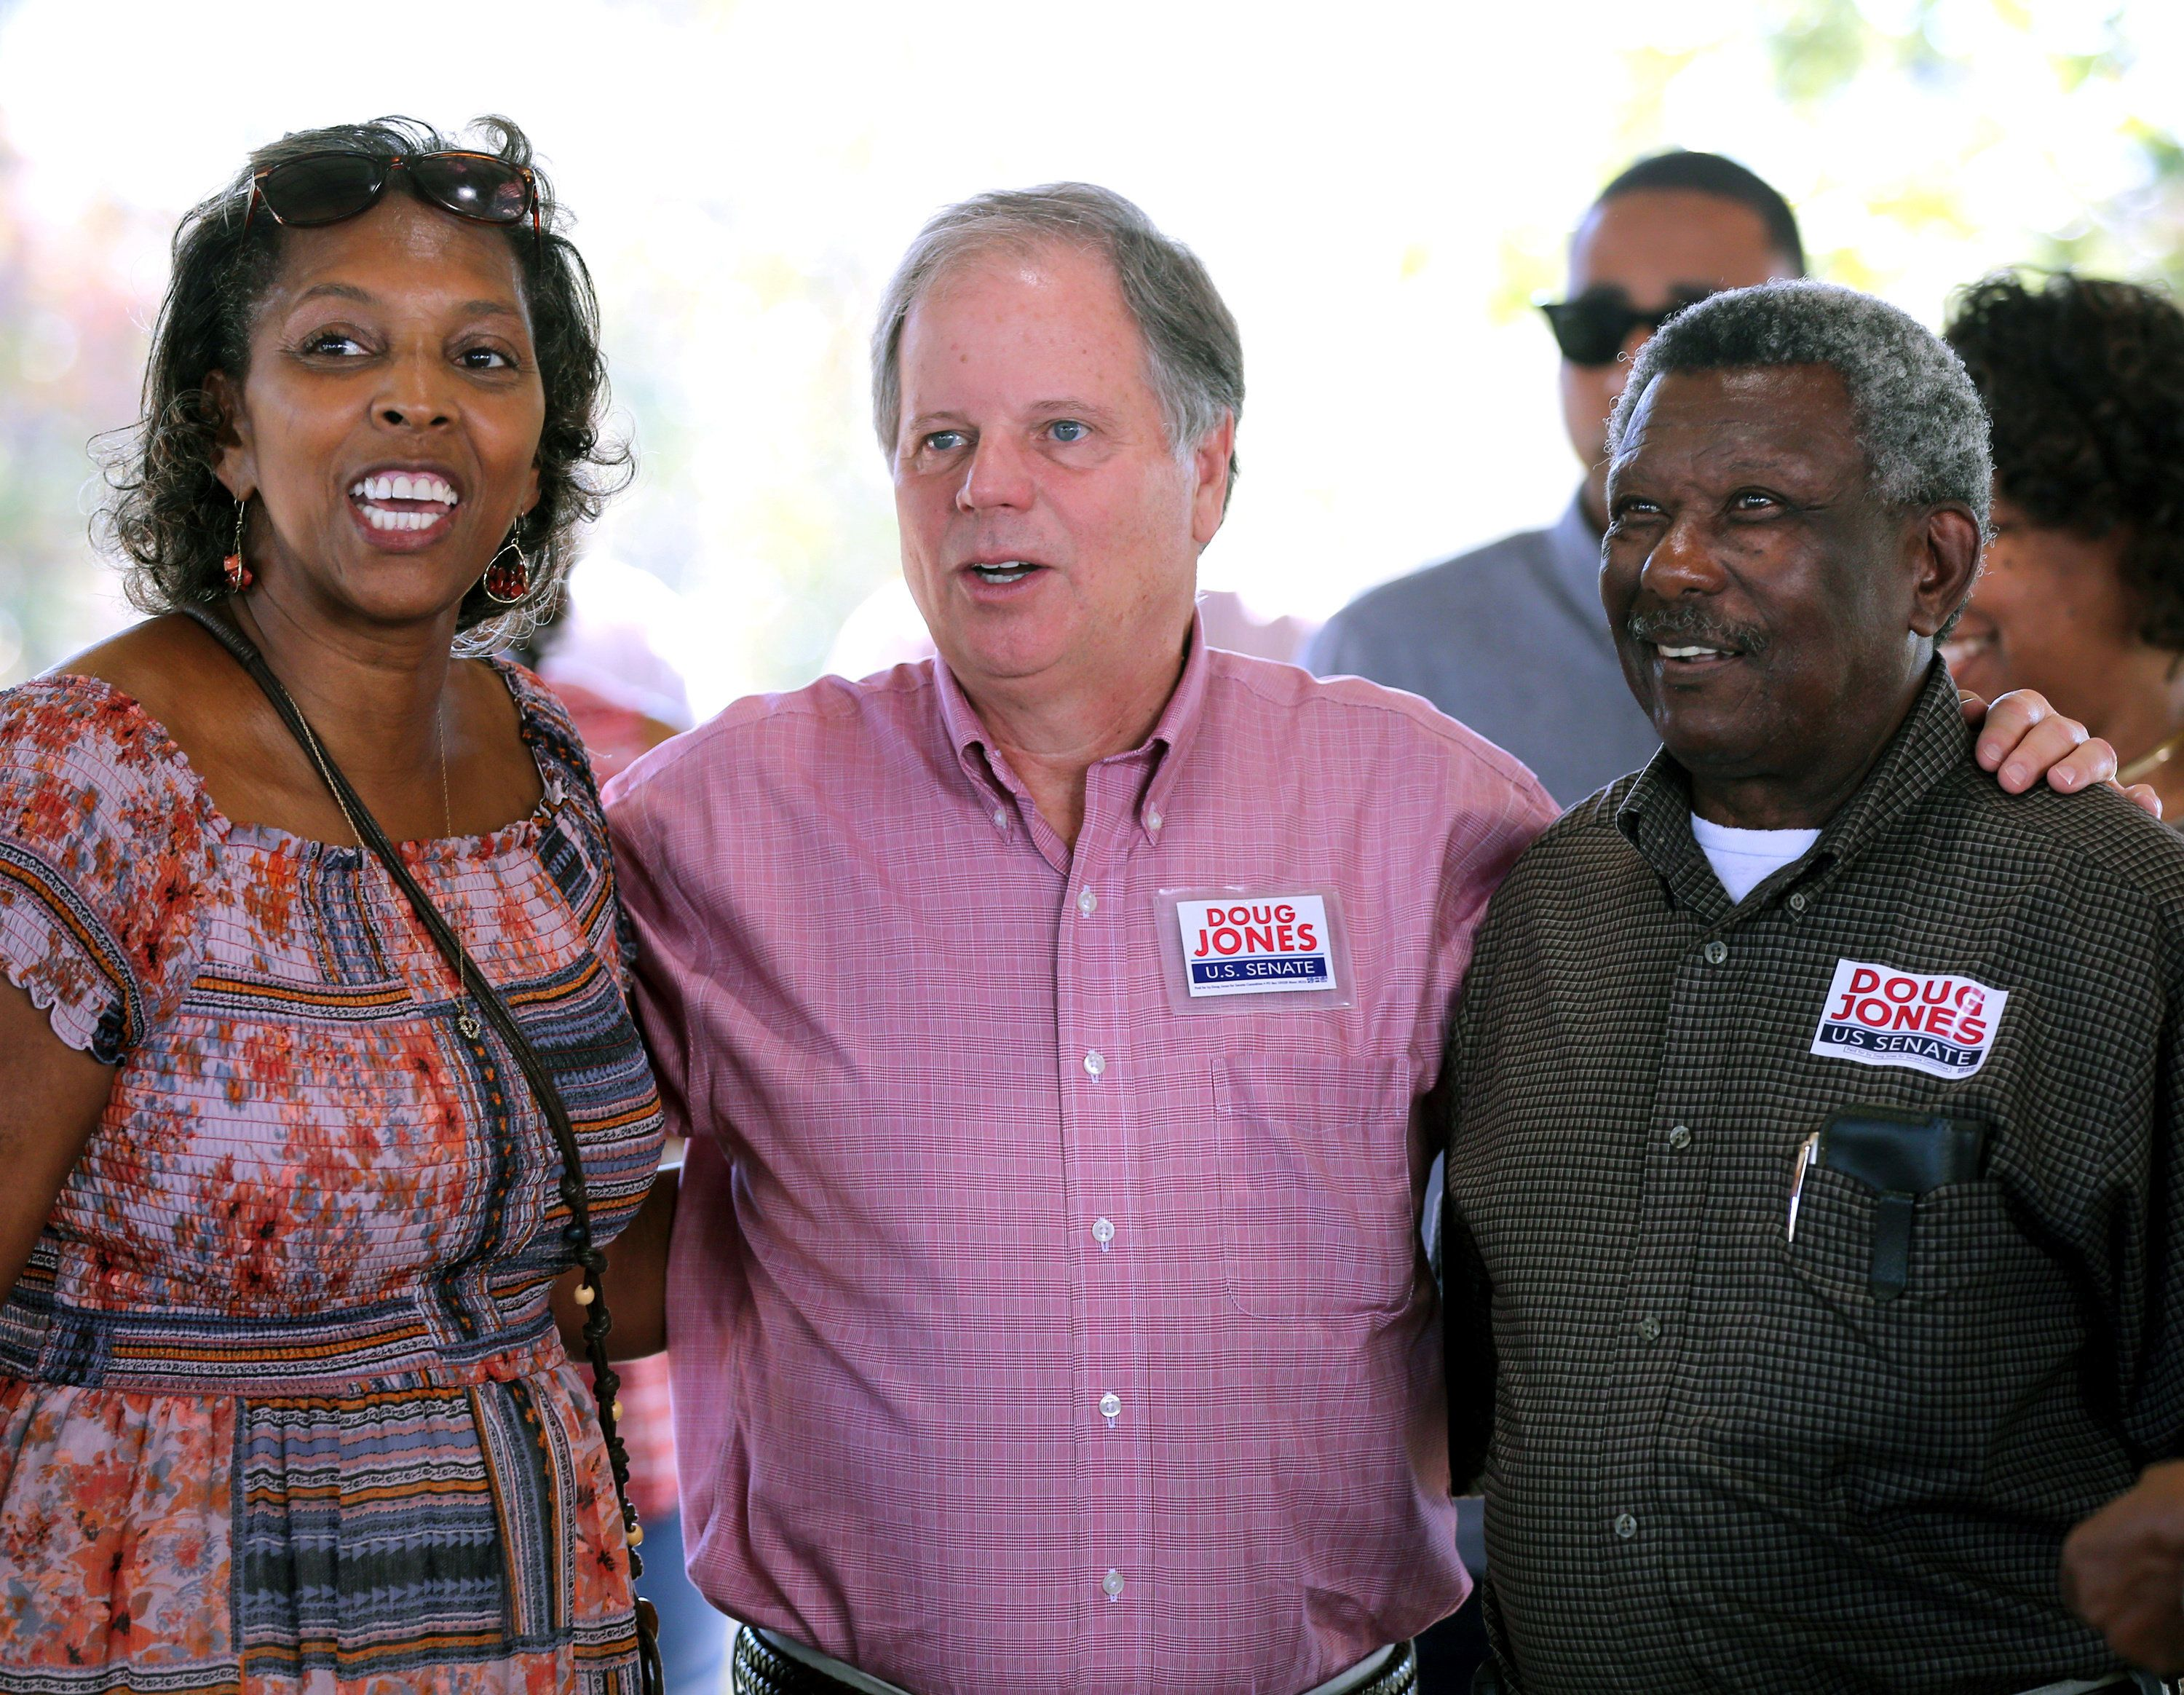 Democratic Alabama U.S. Senate candidate Doug Jones (L) greets supporters while campaigning at an outdoor festival in Grove Hill, Alabama, U.S. on November 4, 2017. Picture taken on November 4, 2017.   REUTERS/Mike Kittrell